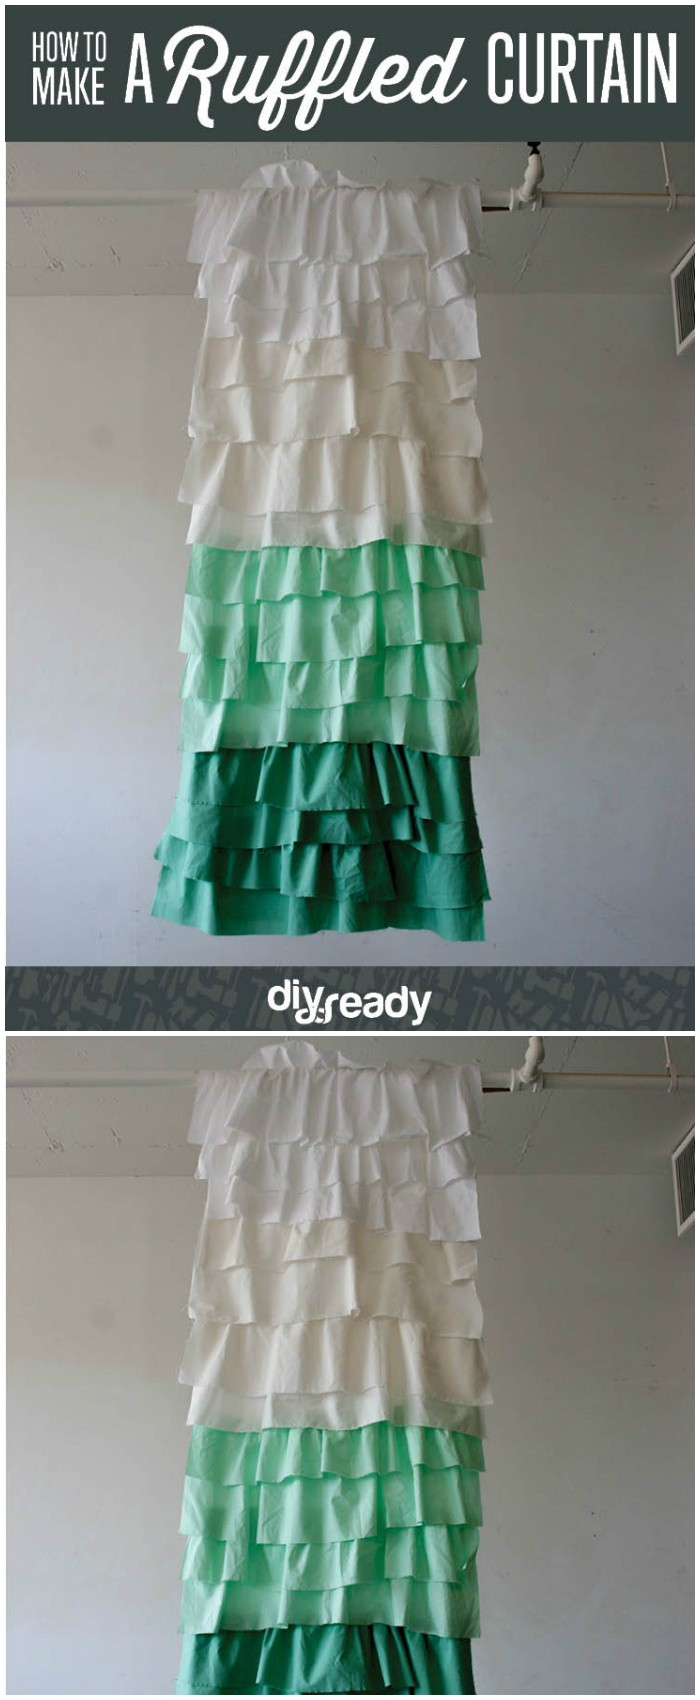 25 interesting DIY bathroom ideas on your budget DIY Ruffled Shower Curtain